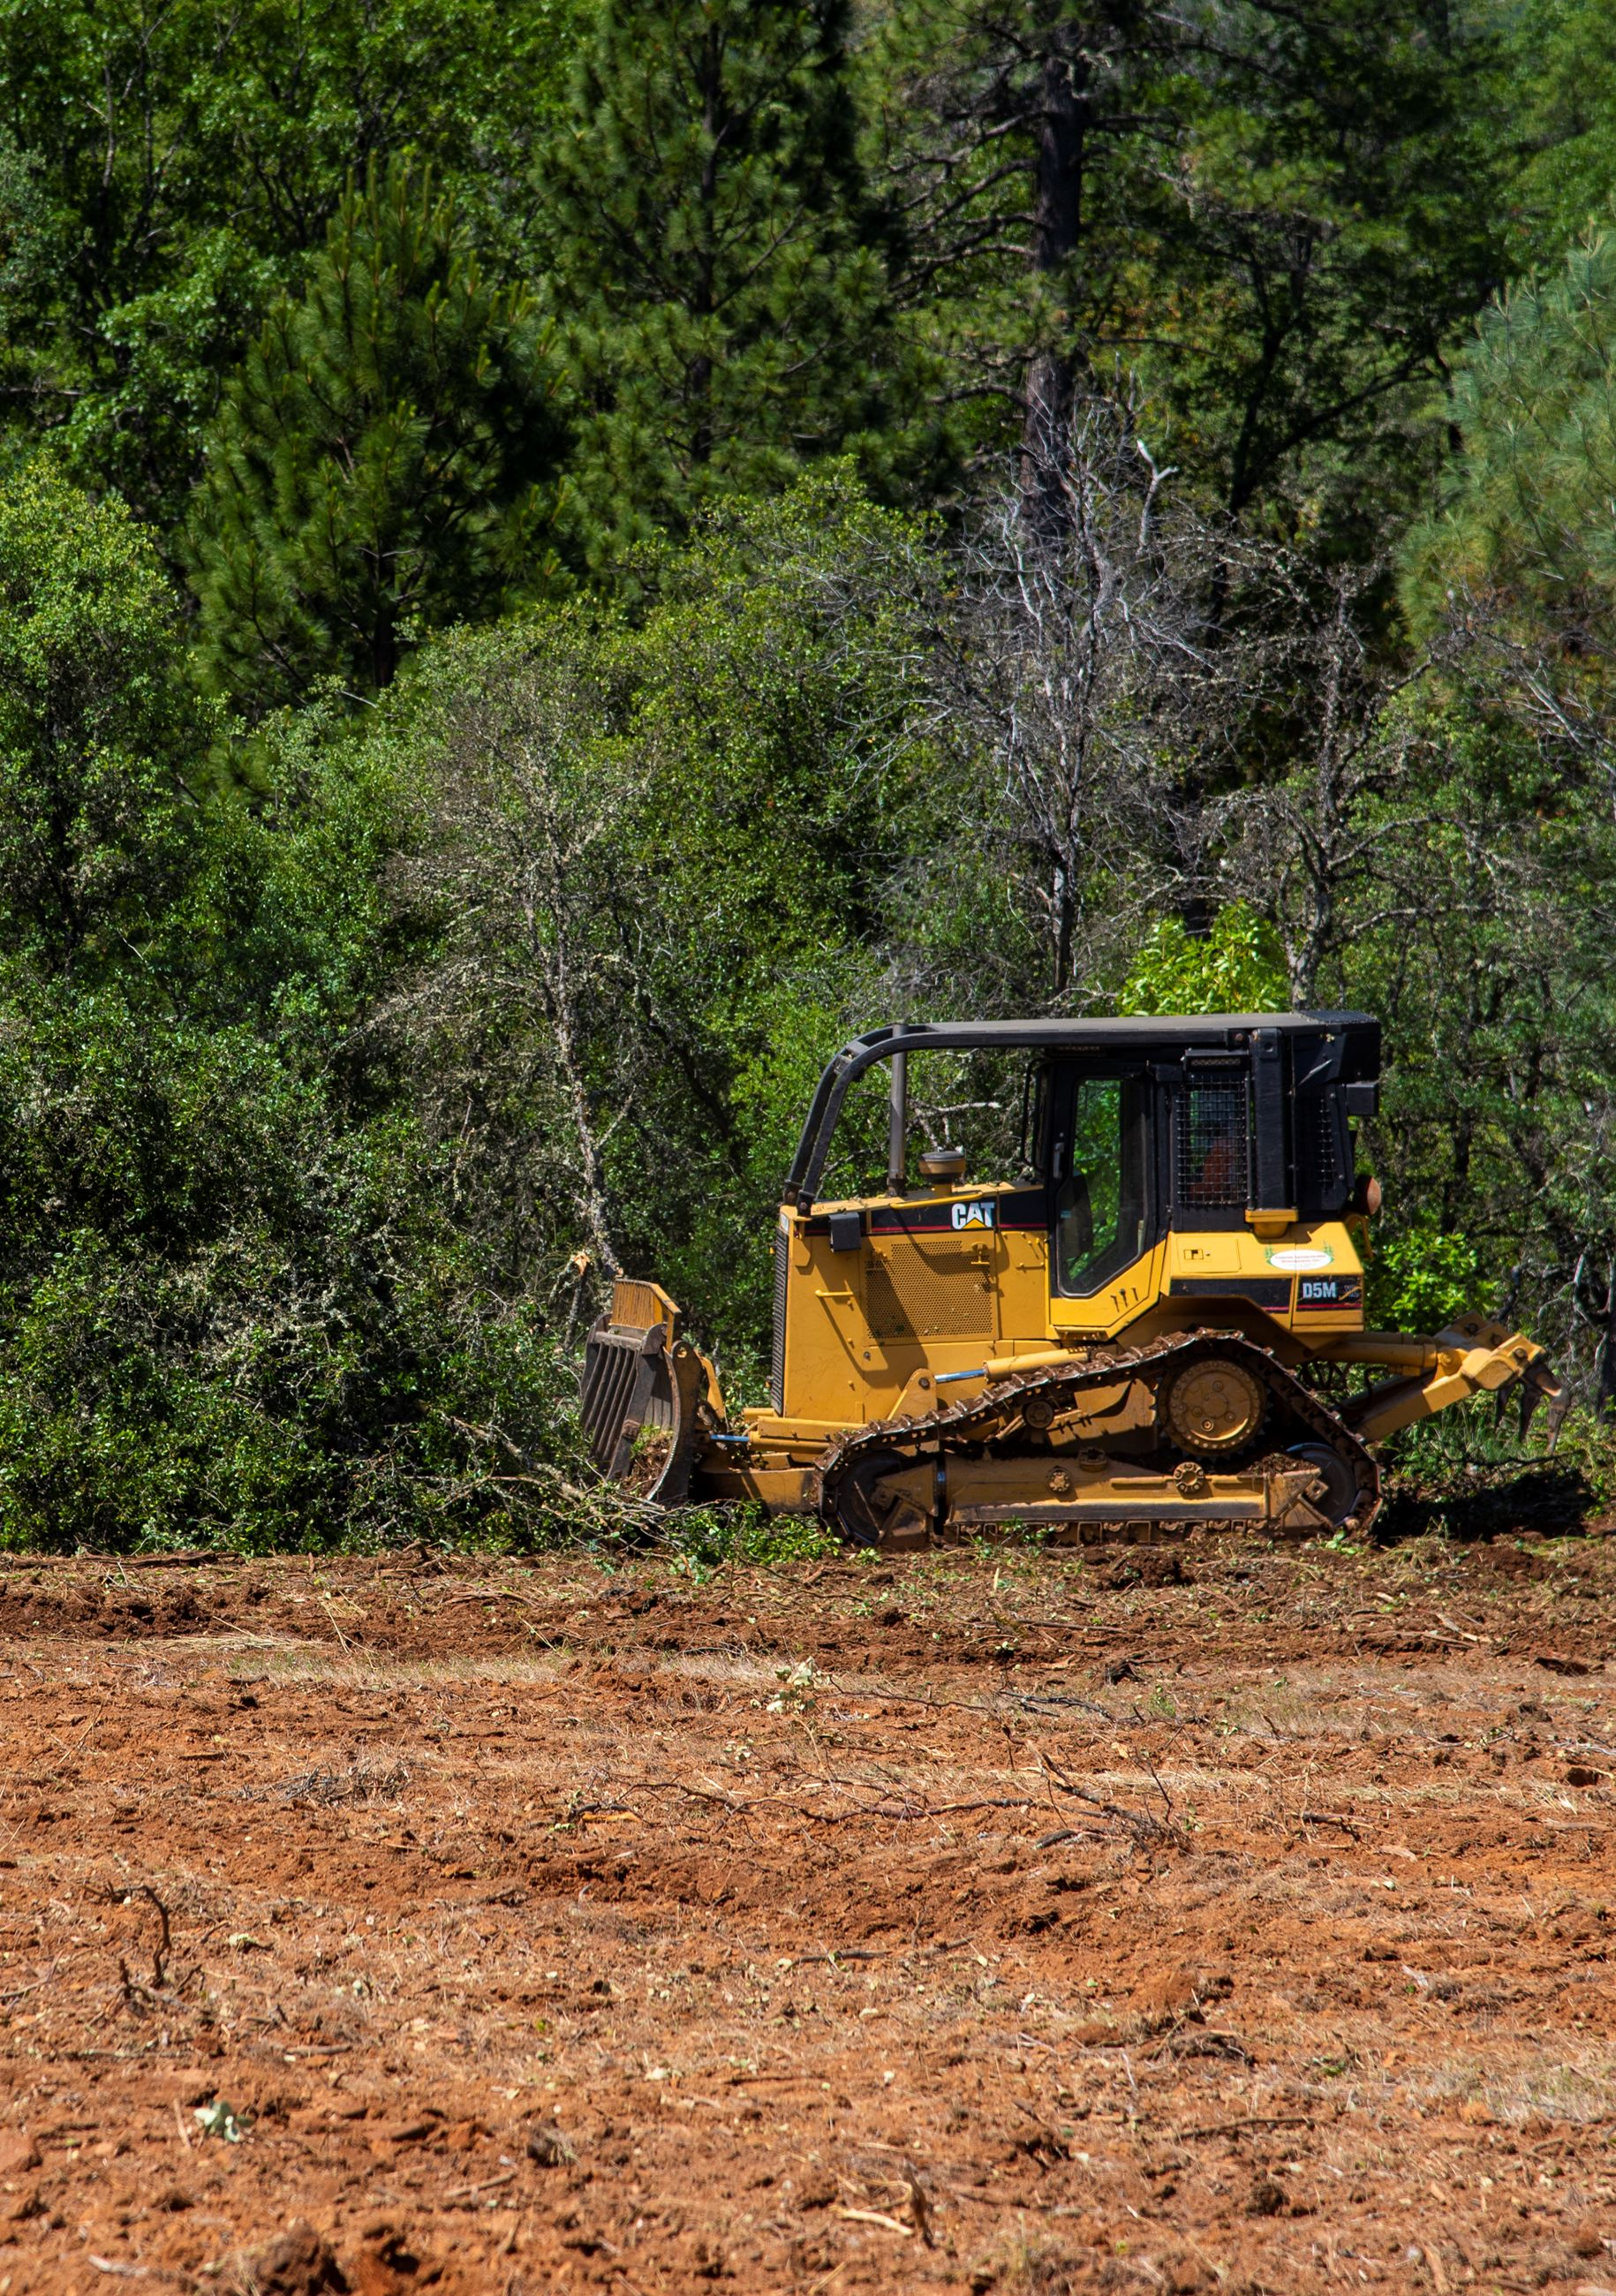 A tractor clears forest brush into piles